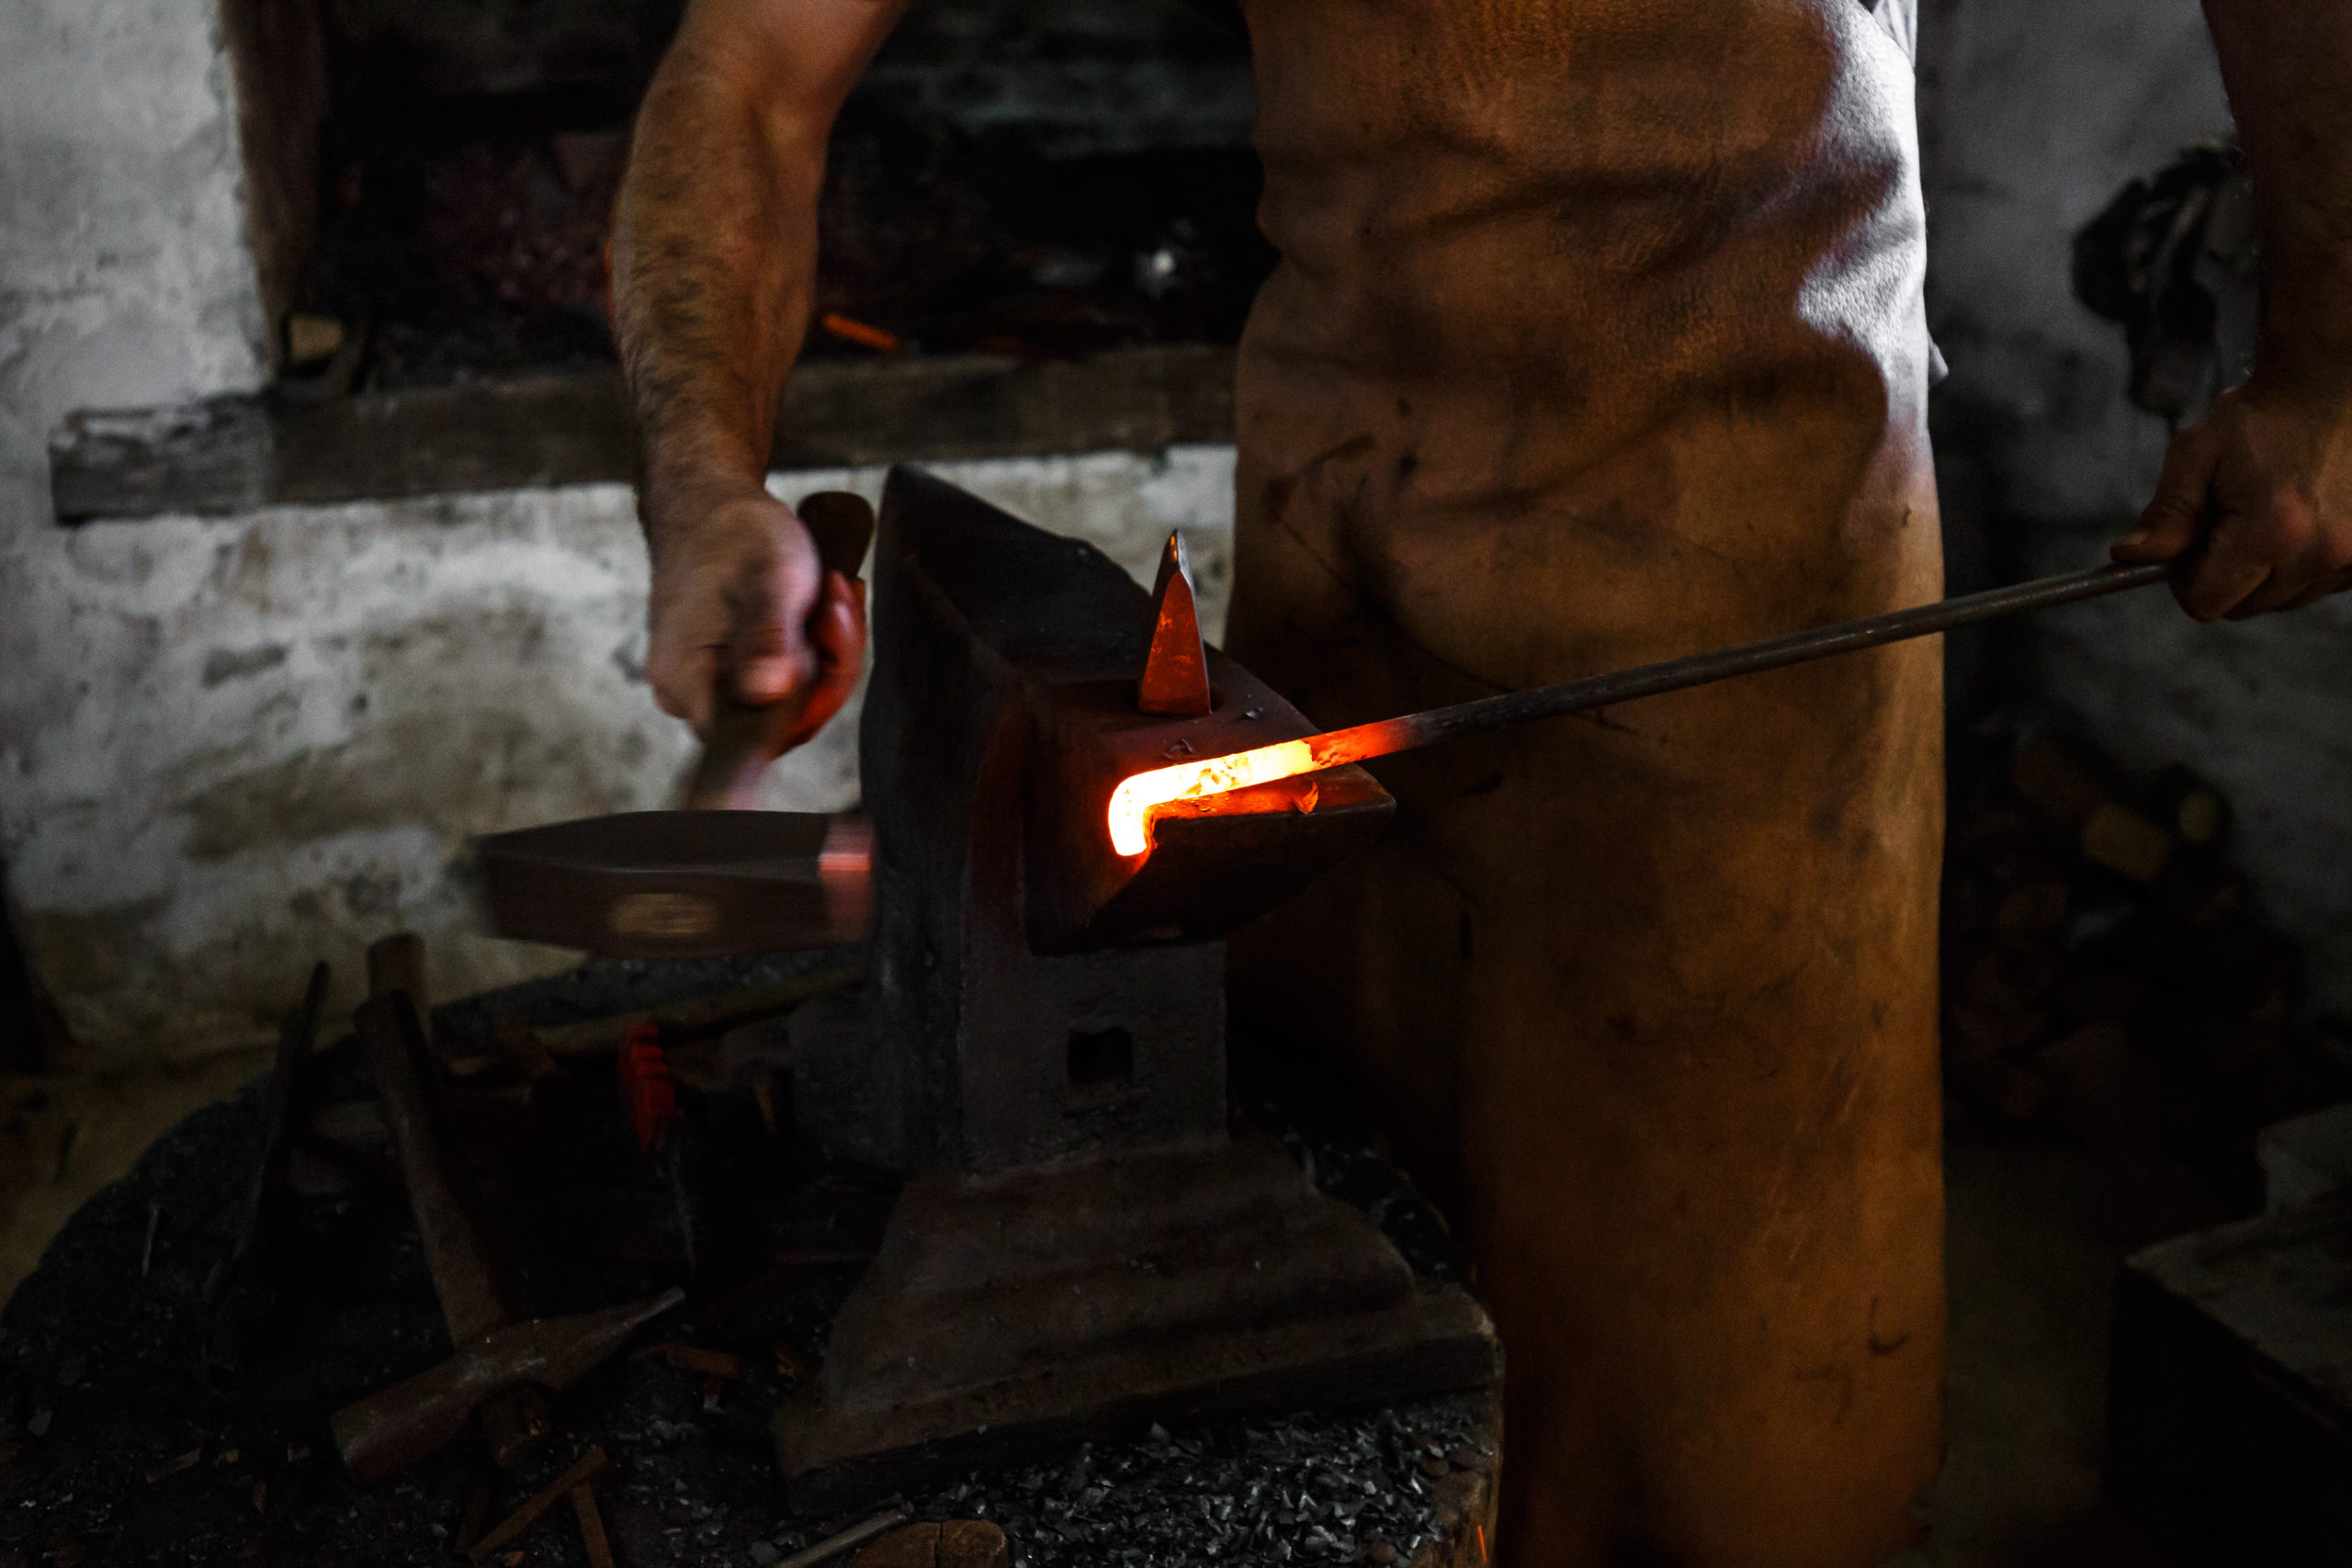 The blacksmith forge the hot metal on the anvil in smithy